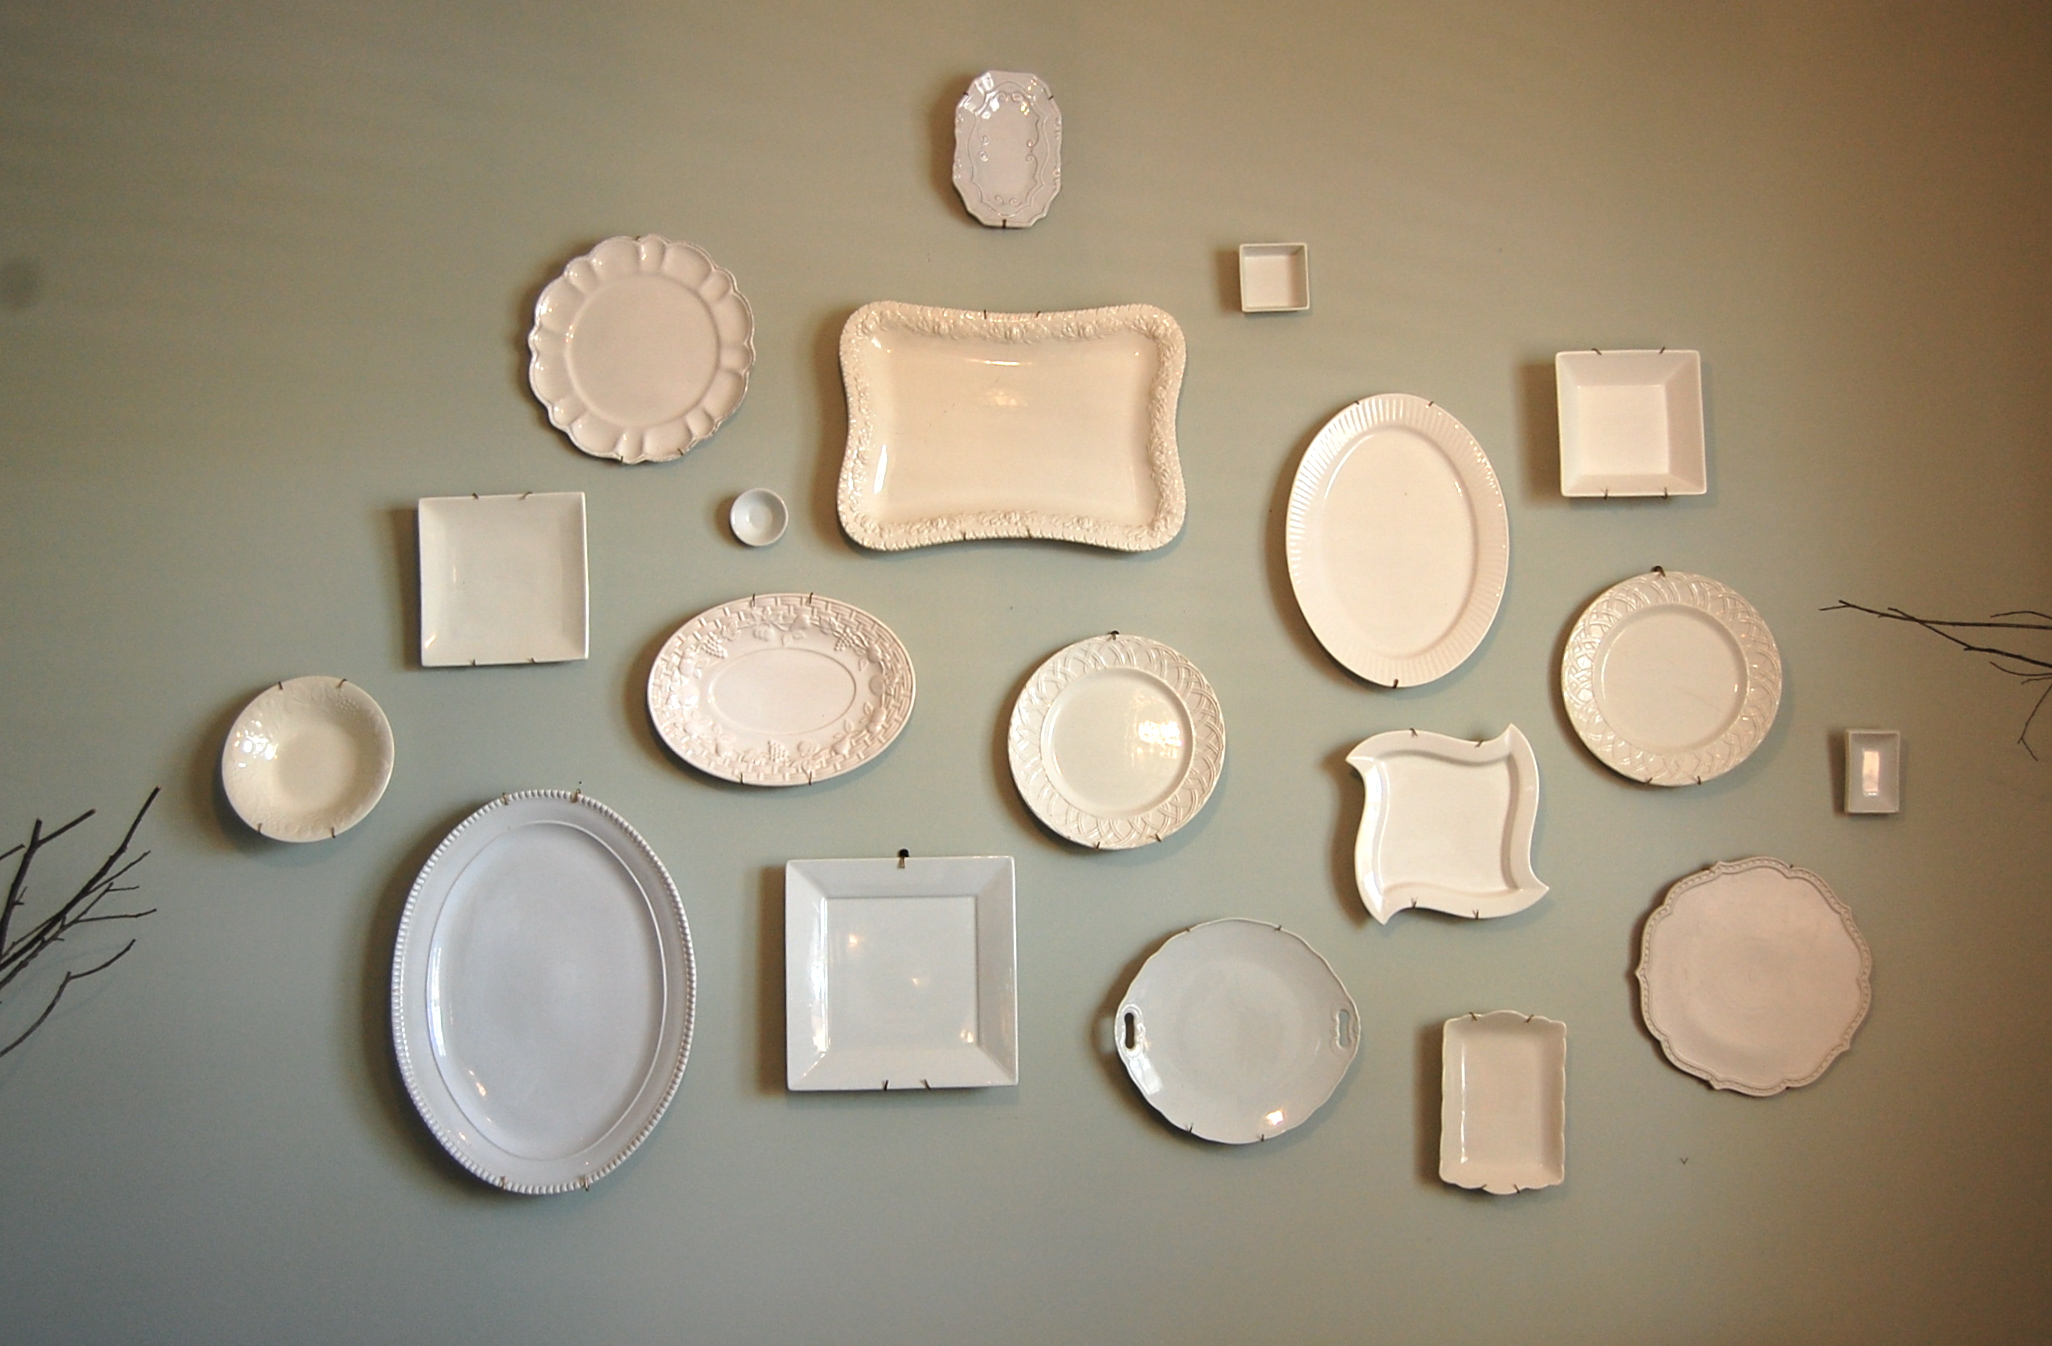 & How to Hang Plates on Your Wall